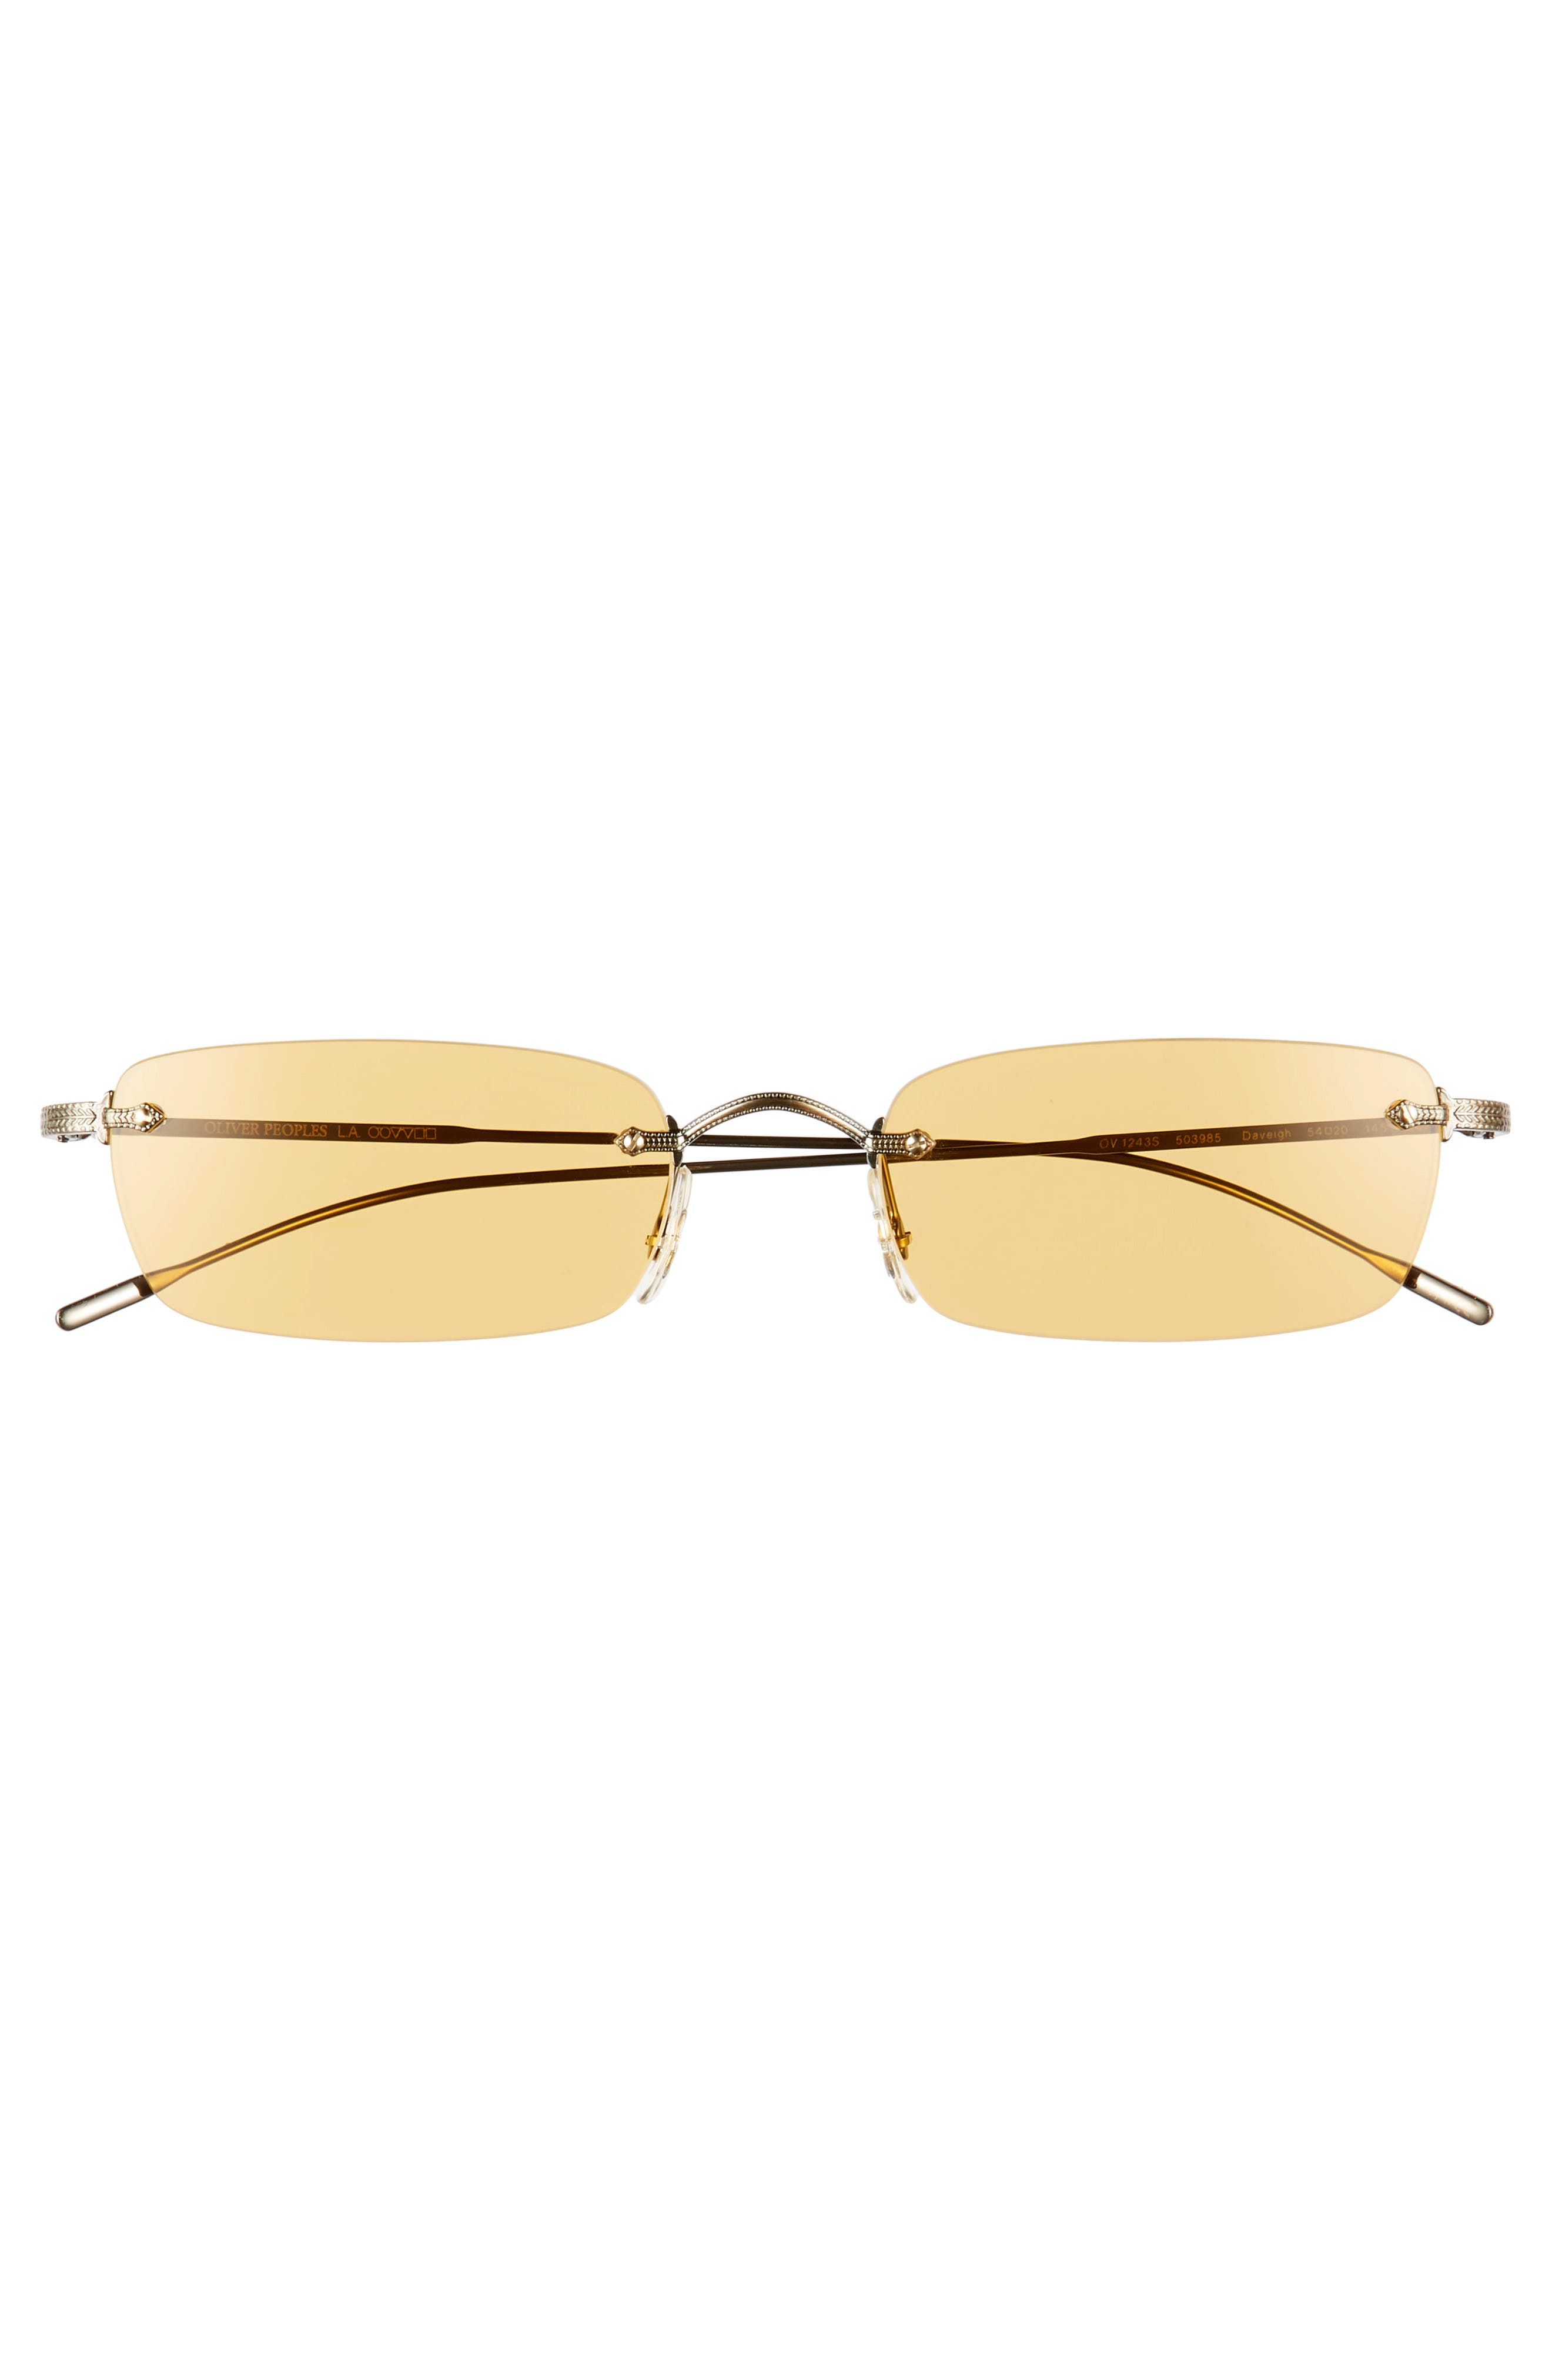 Daveigh 54mm Sunglasses,                             Alternate thumbnail 3, color,                             Mustard